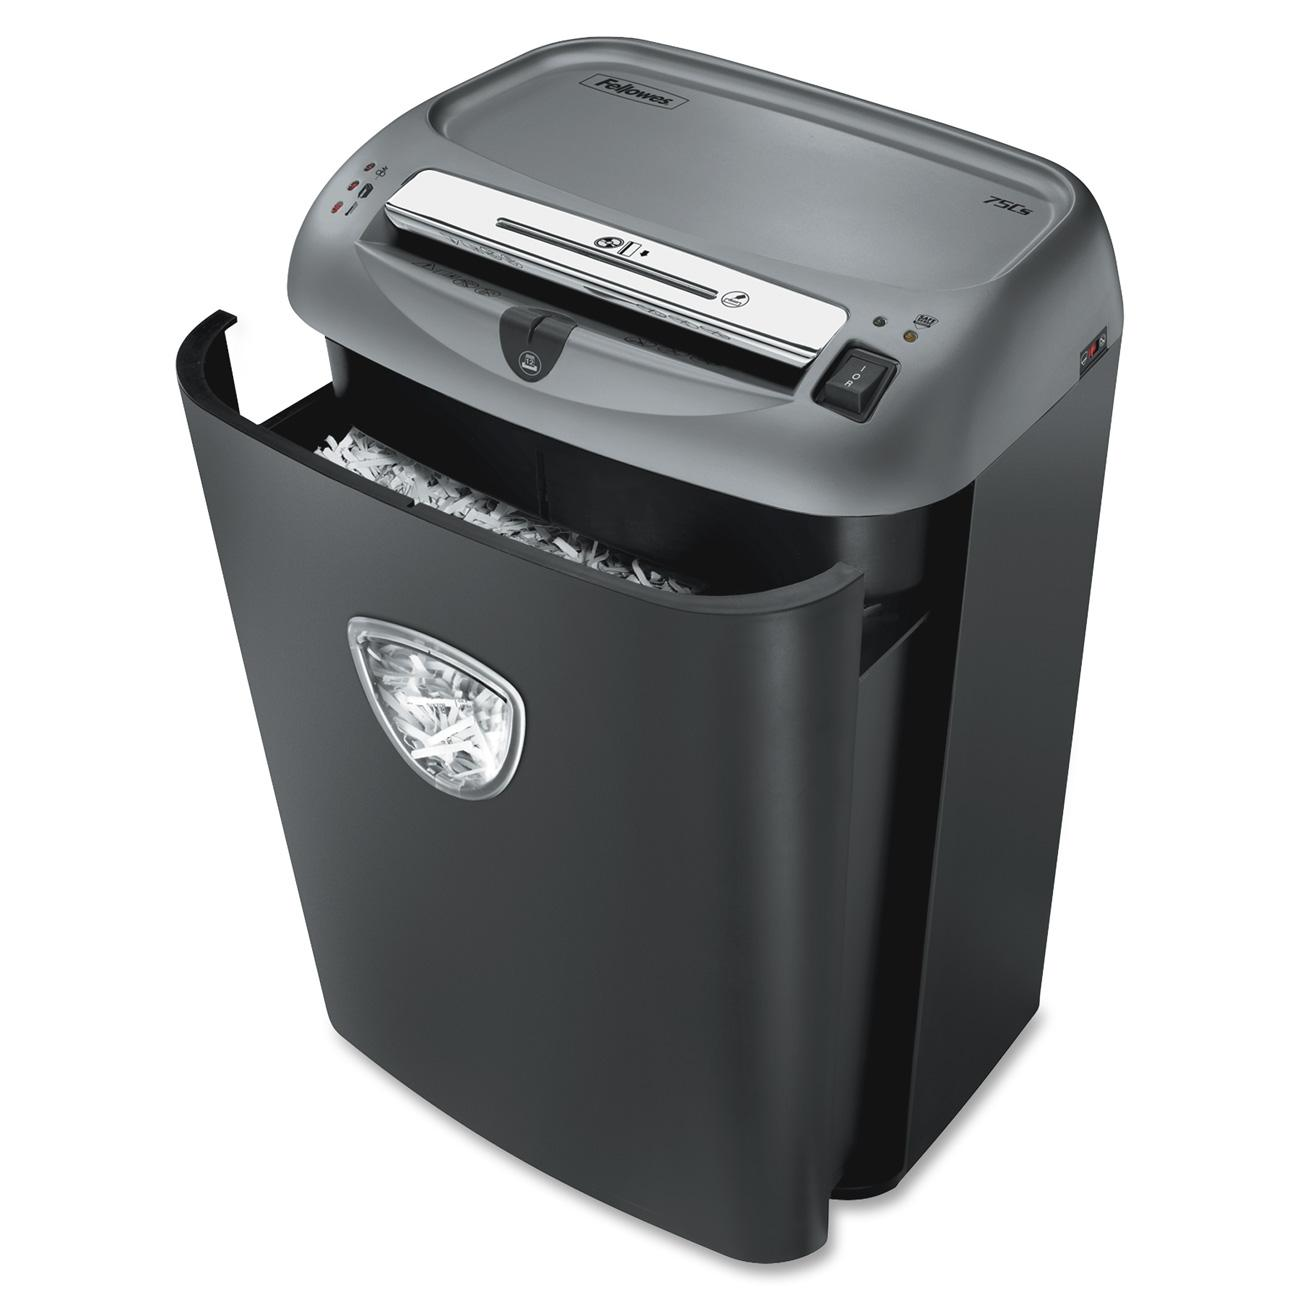 paper shredder best buy Looking for the best paper shredder in the market you have landed the right page, here we have reviewed the best paper shredders 2018 which can help you with buying.